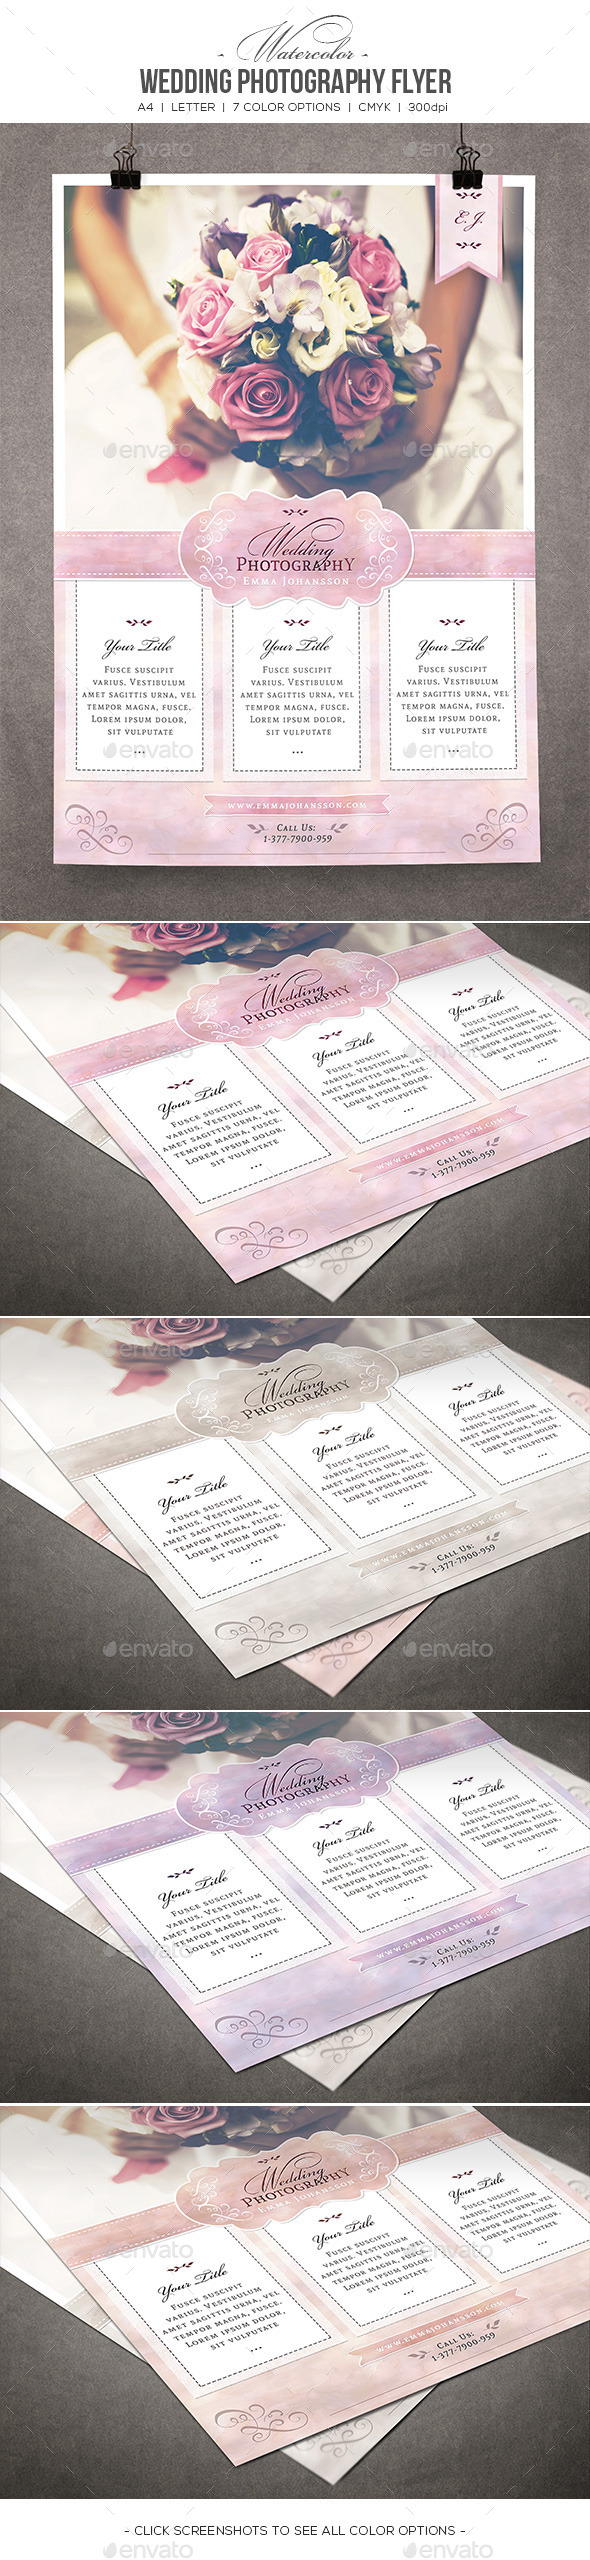 Watercolor Wedding Photography Flyer - Commerce Flyers